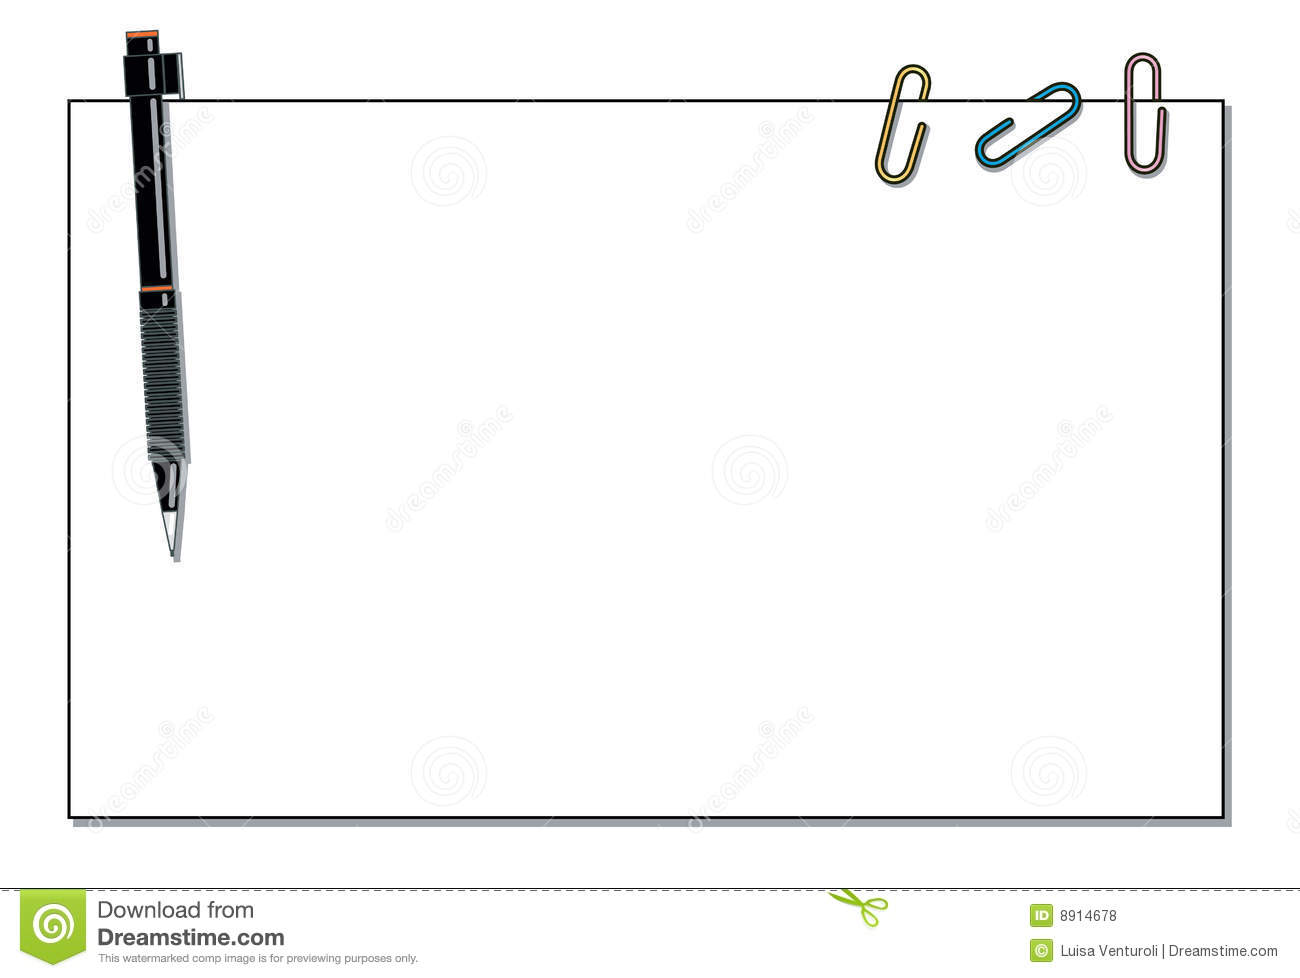 Wallpaper With Paper Pen And Paper Clips Stock Vector